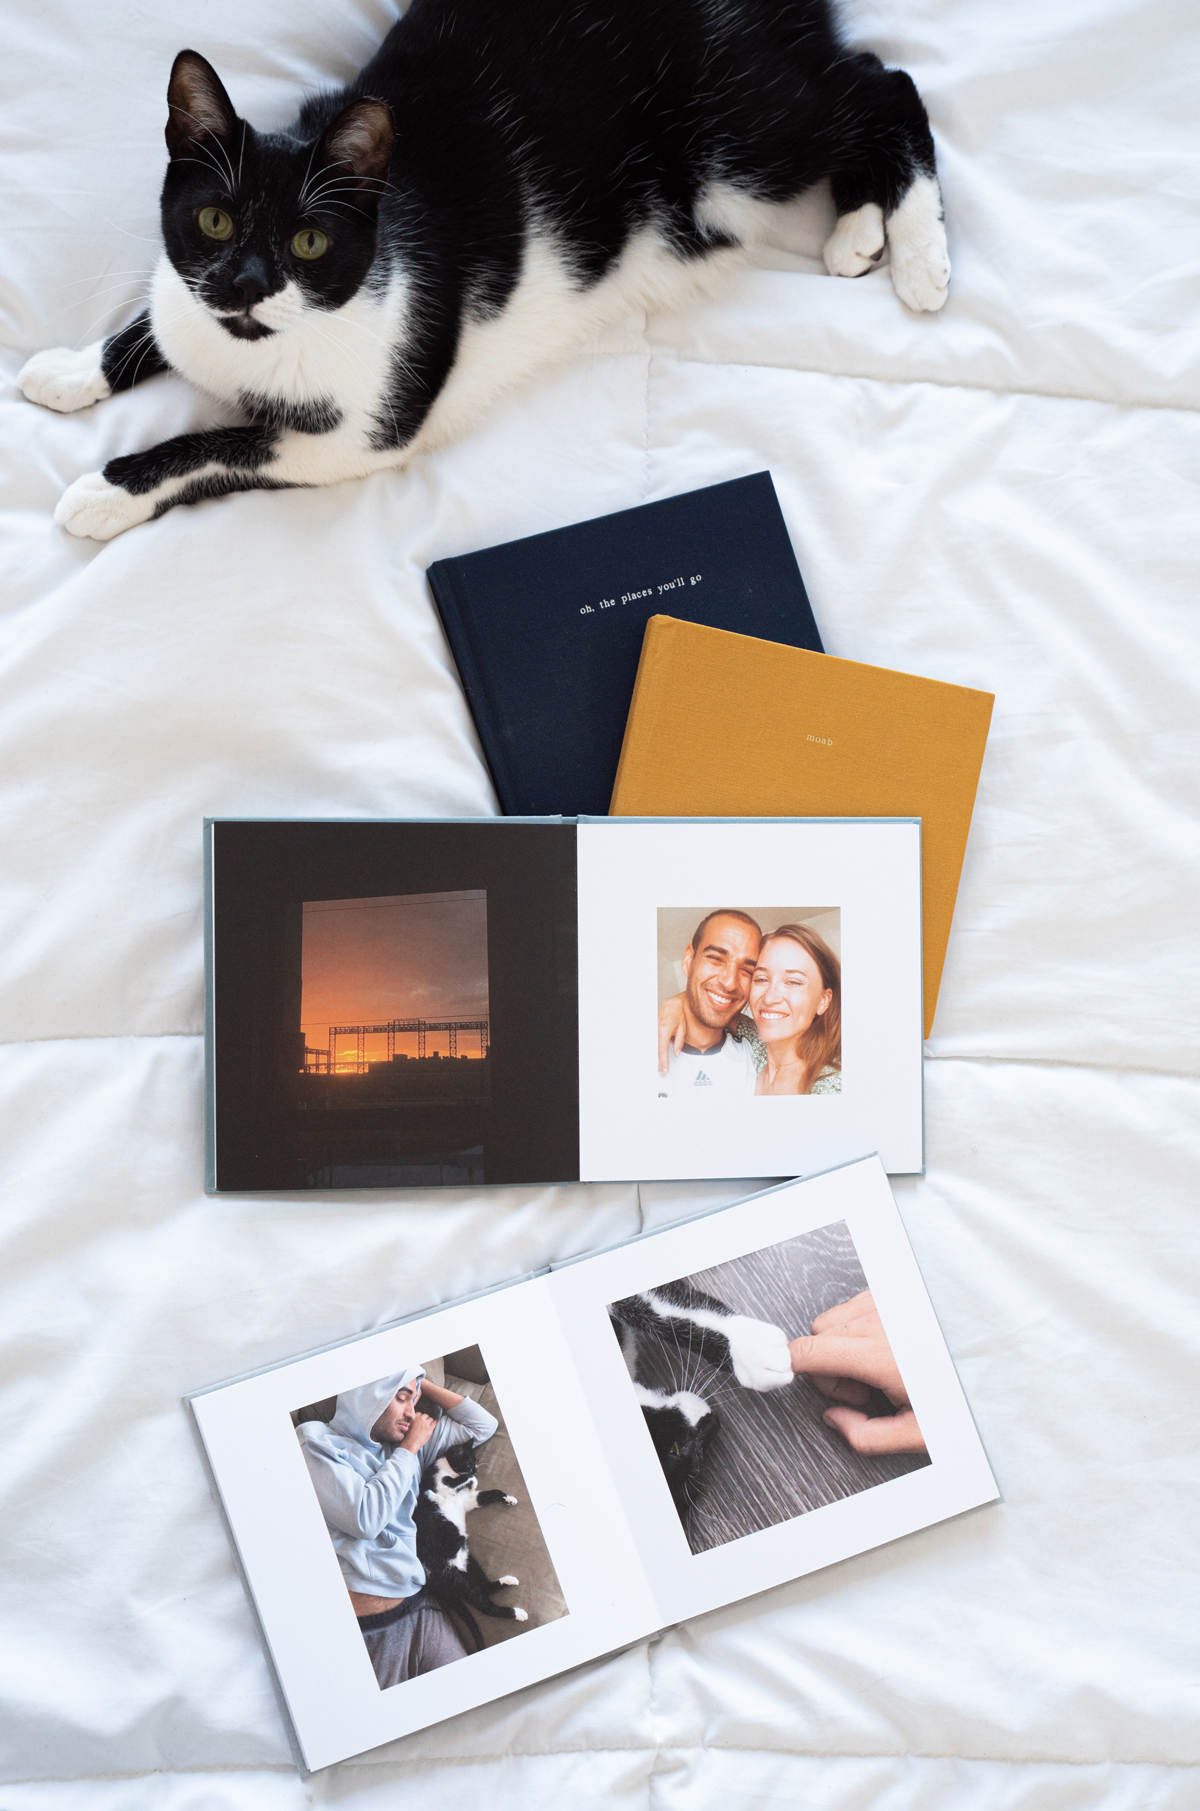 Artifact Uprising Everyday Photo Books on bed next to cat